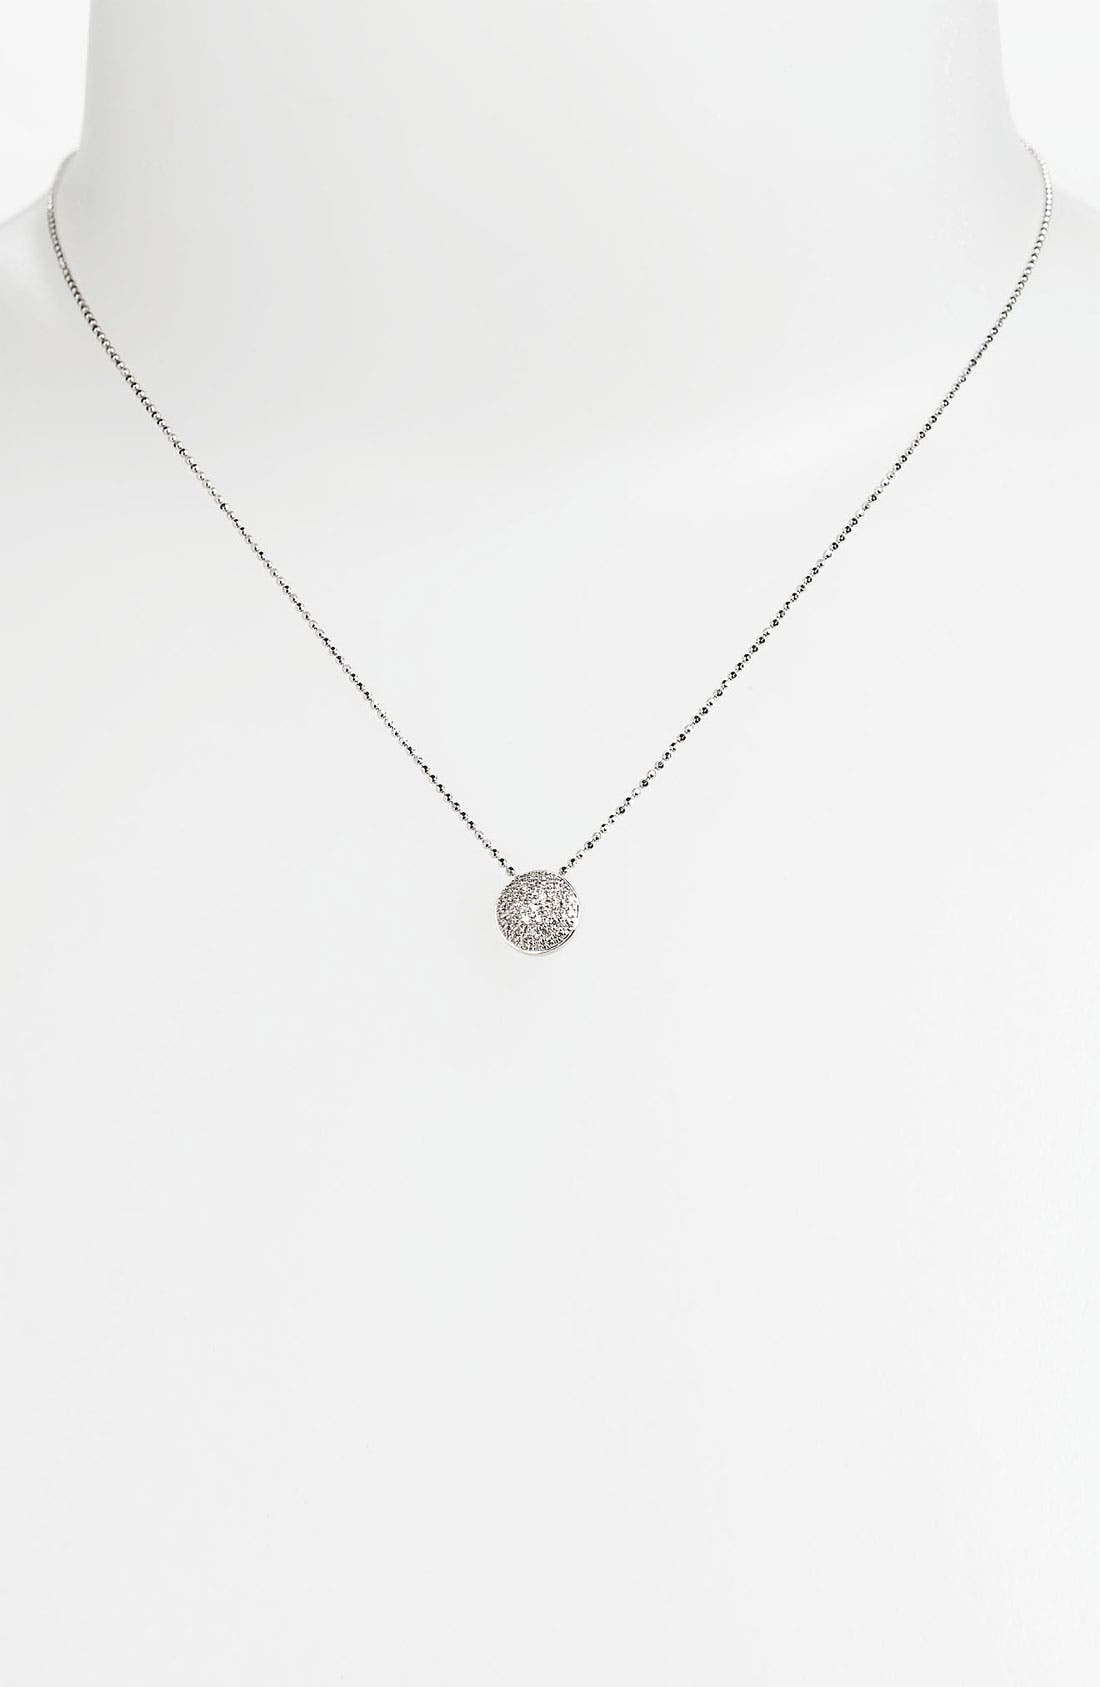 'Eclipse' Pavé Diamond Pendant Necklace,                             Alternate thumbnail 2, color,                             White Gold